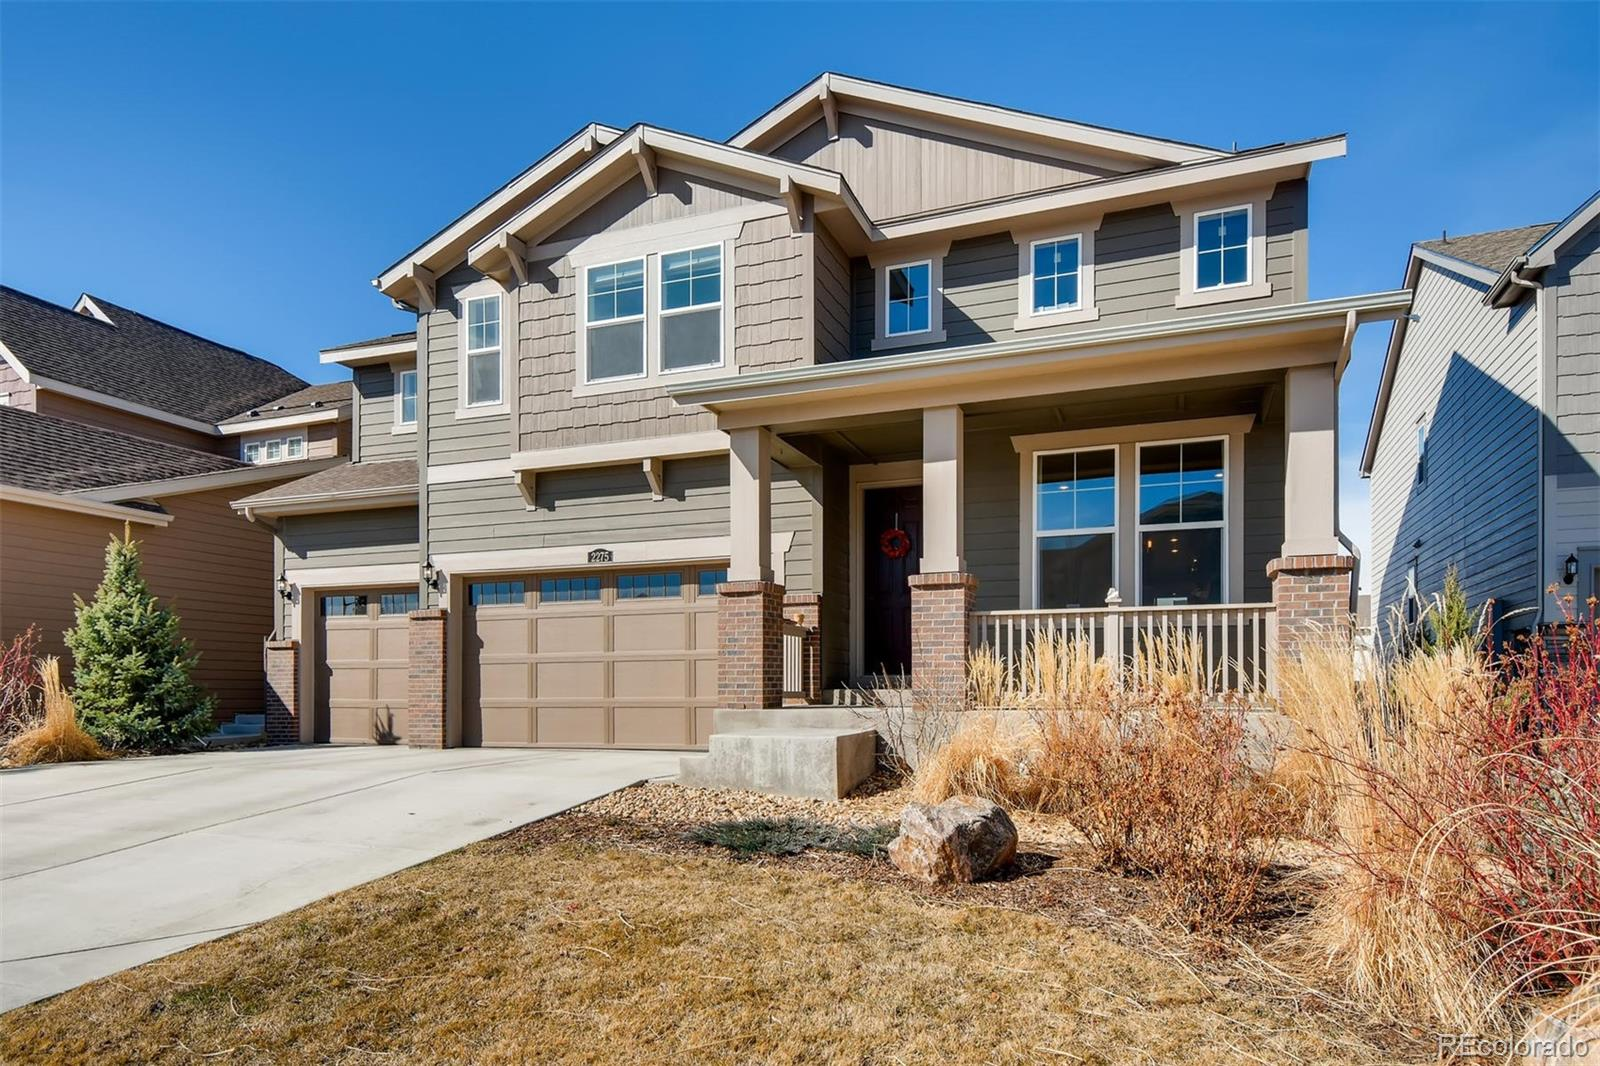 MLS# 6999395 - 2 - 2275 Provenance Court, Longmont, CO 80504